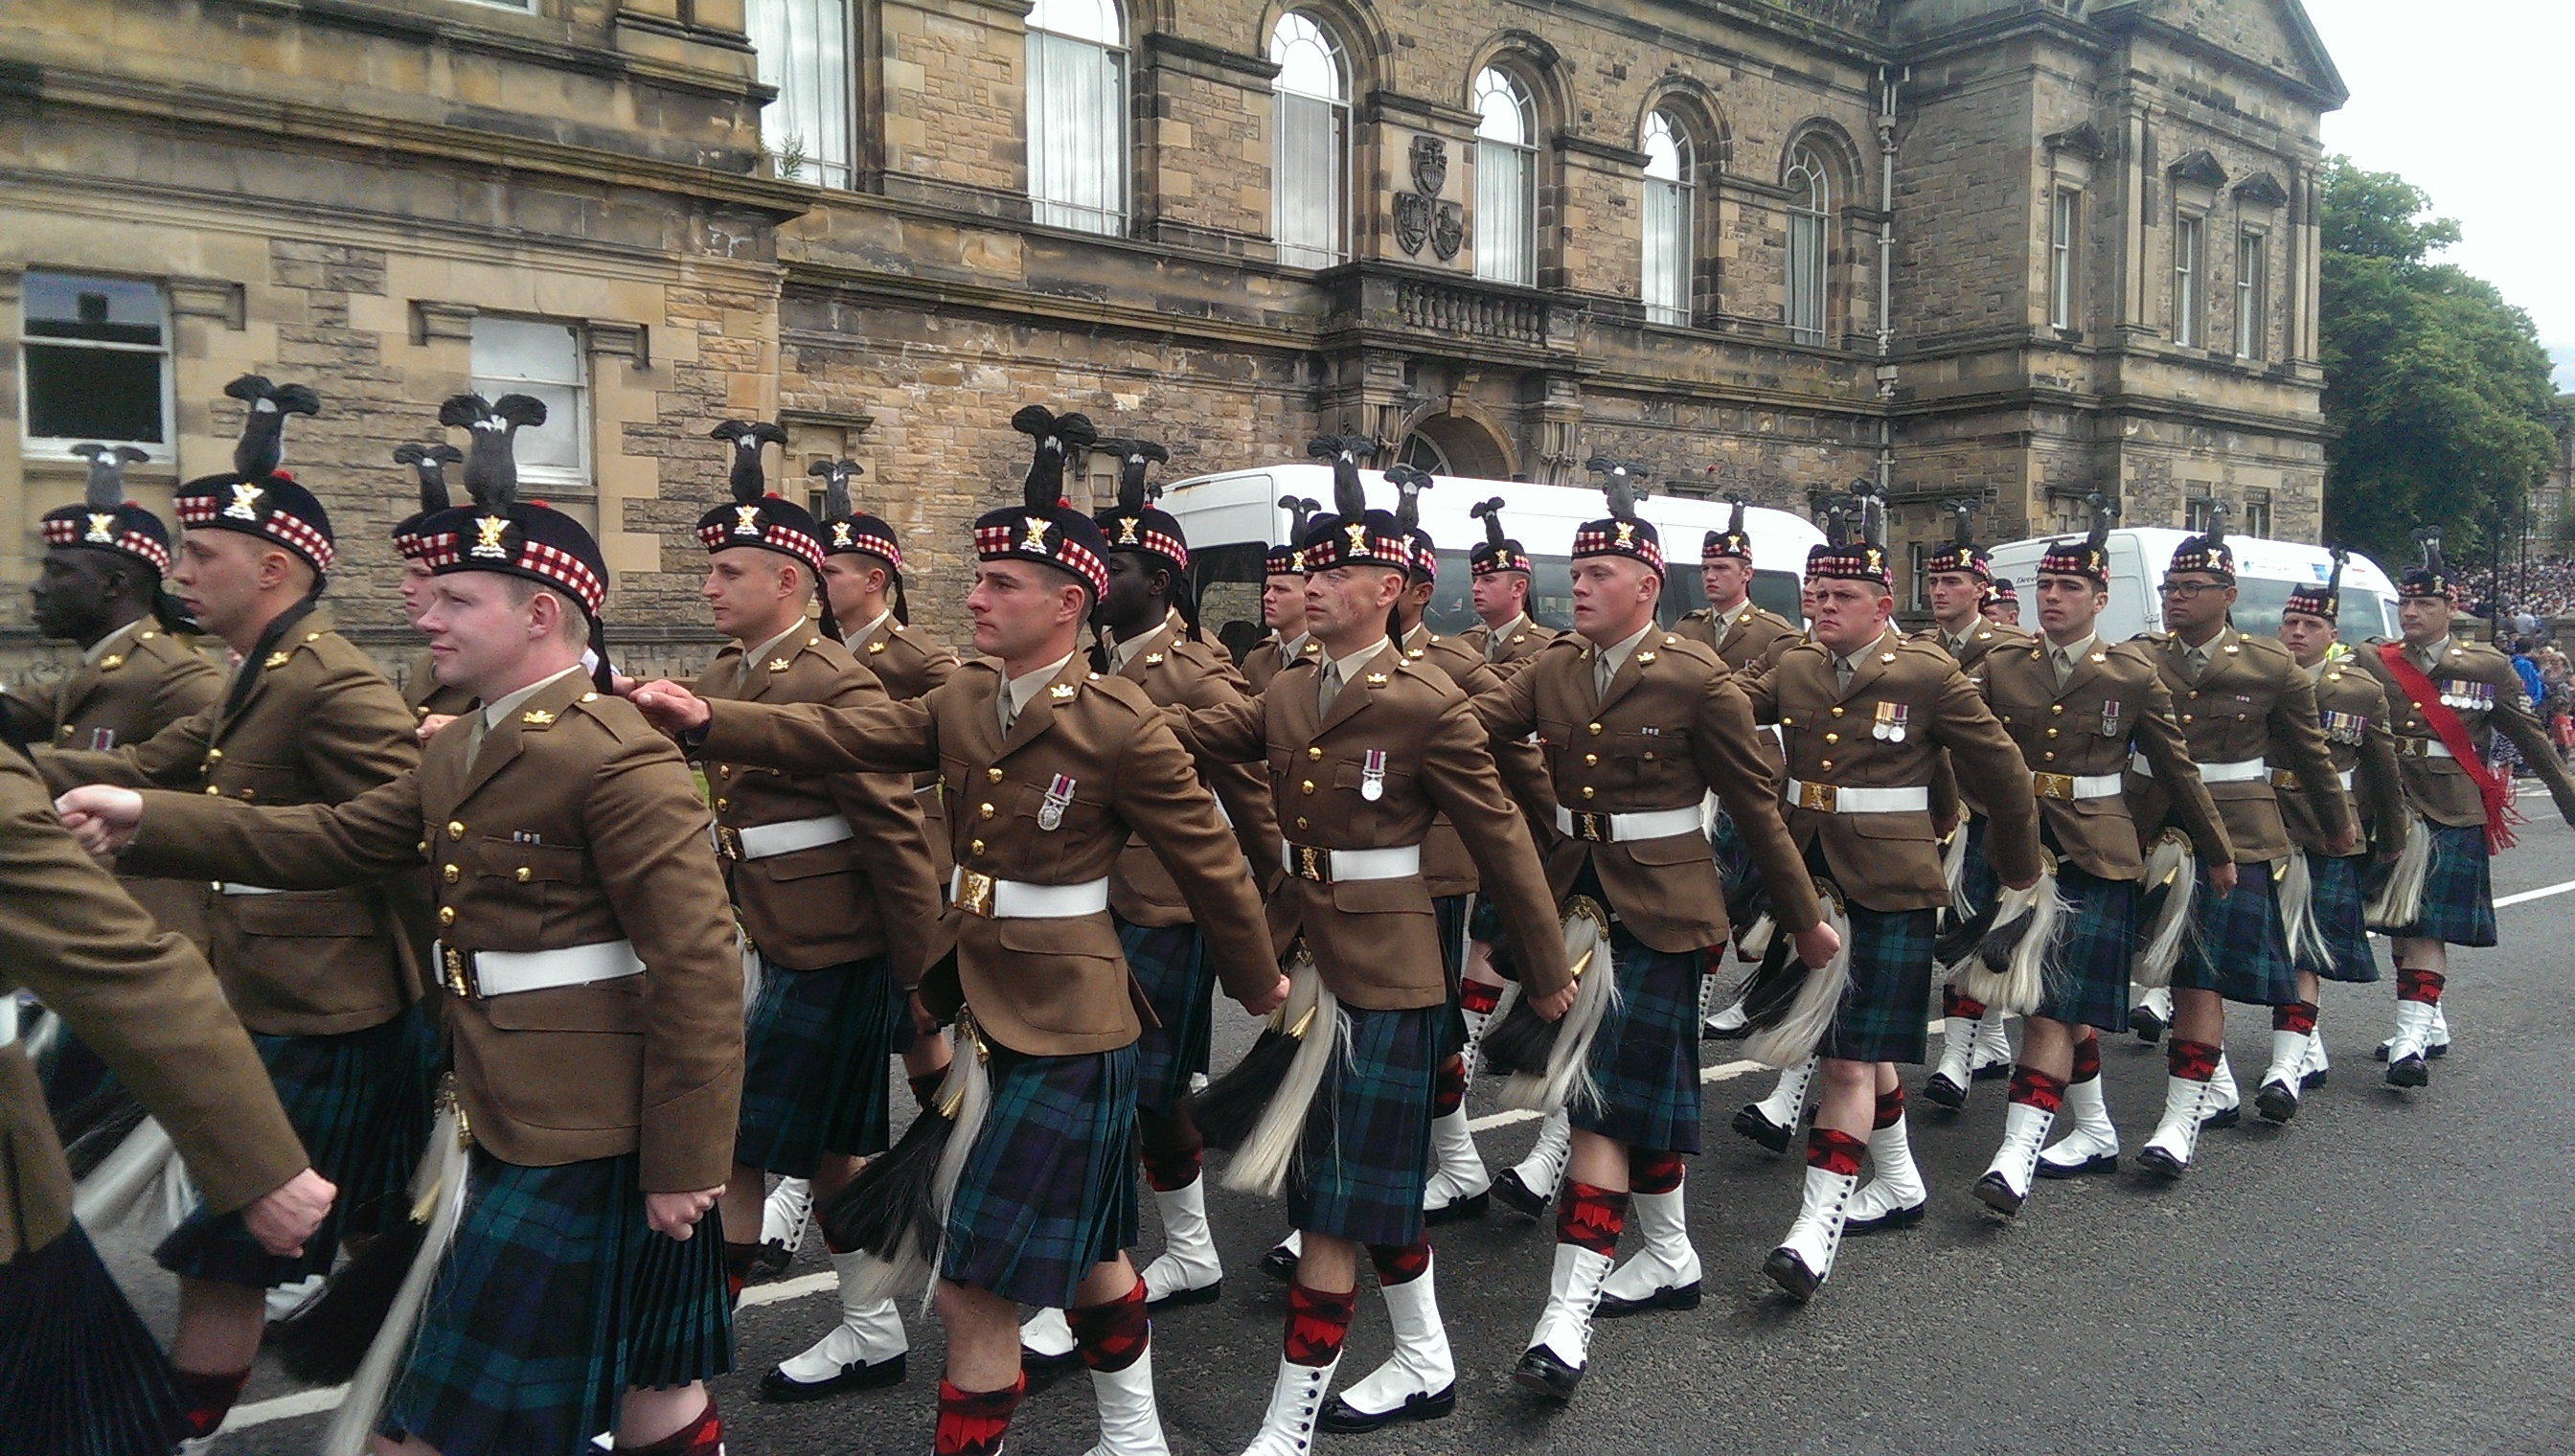 Live from Armed Forces Day parade in Stirling